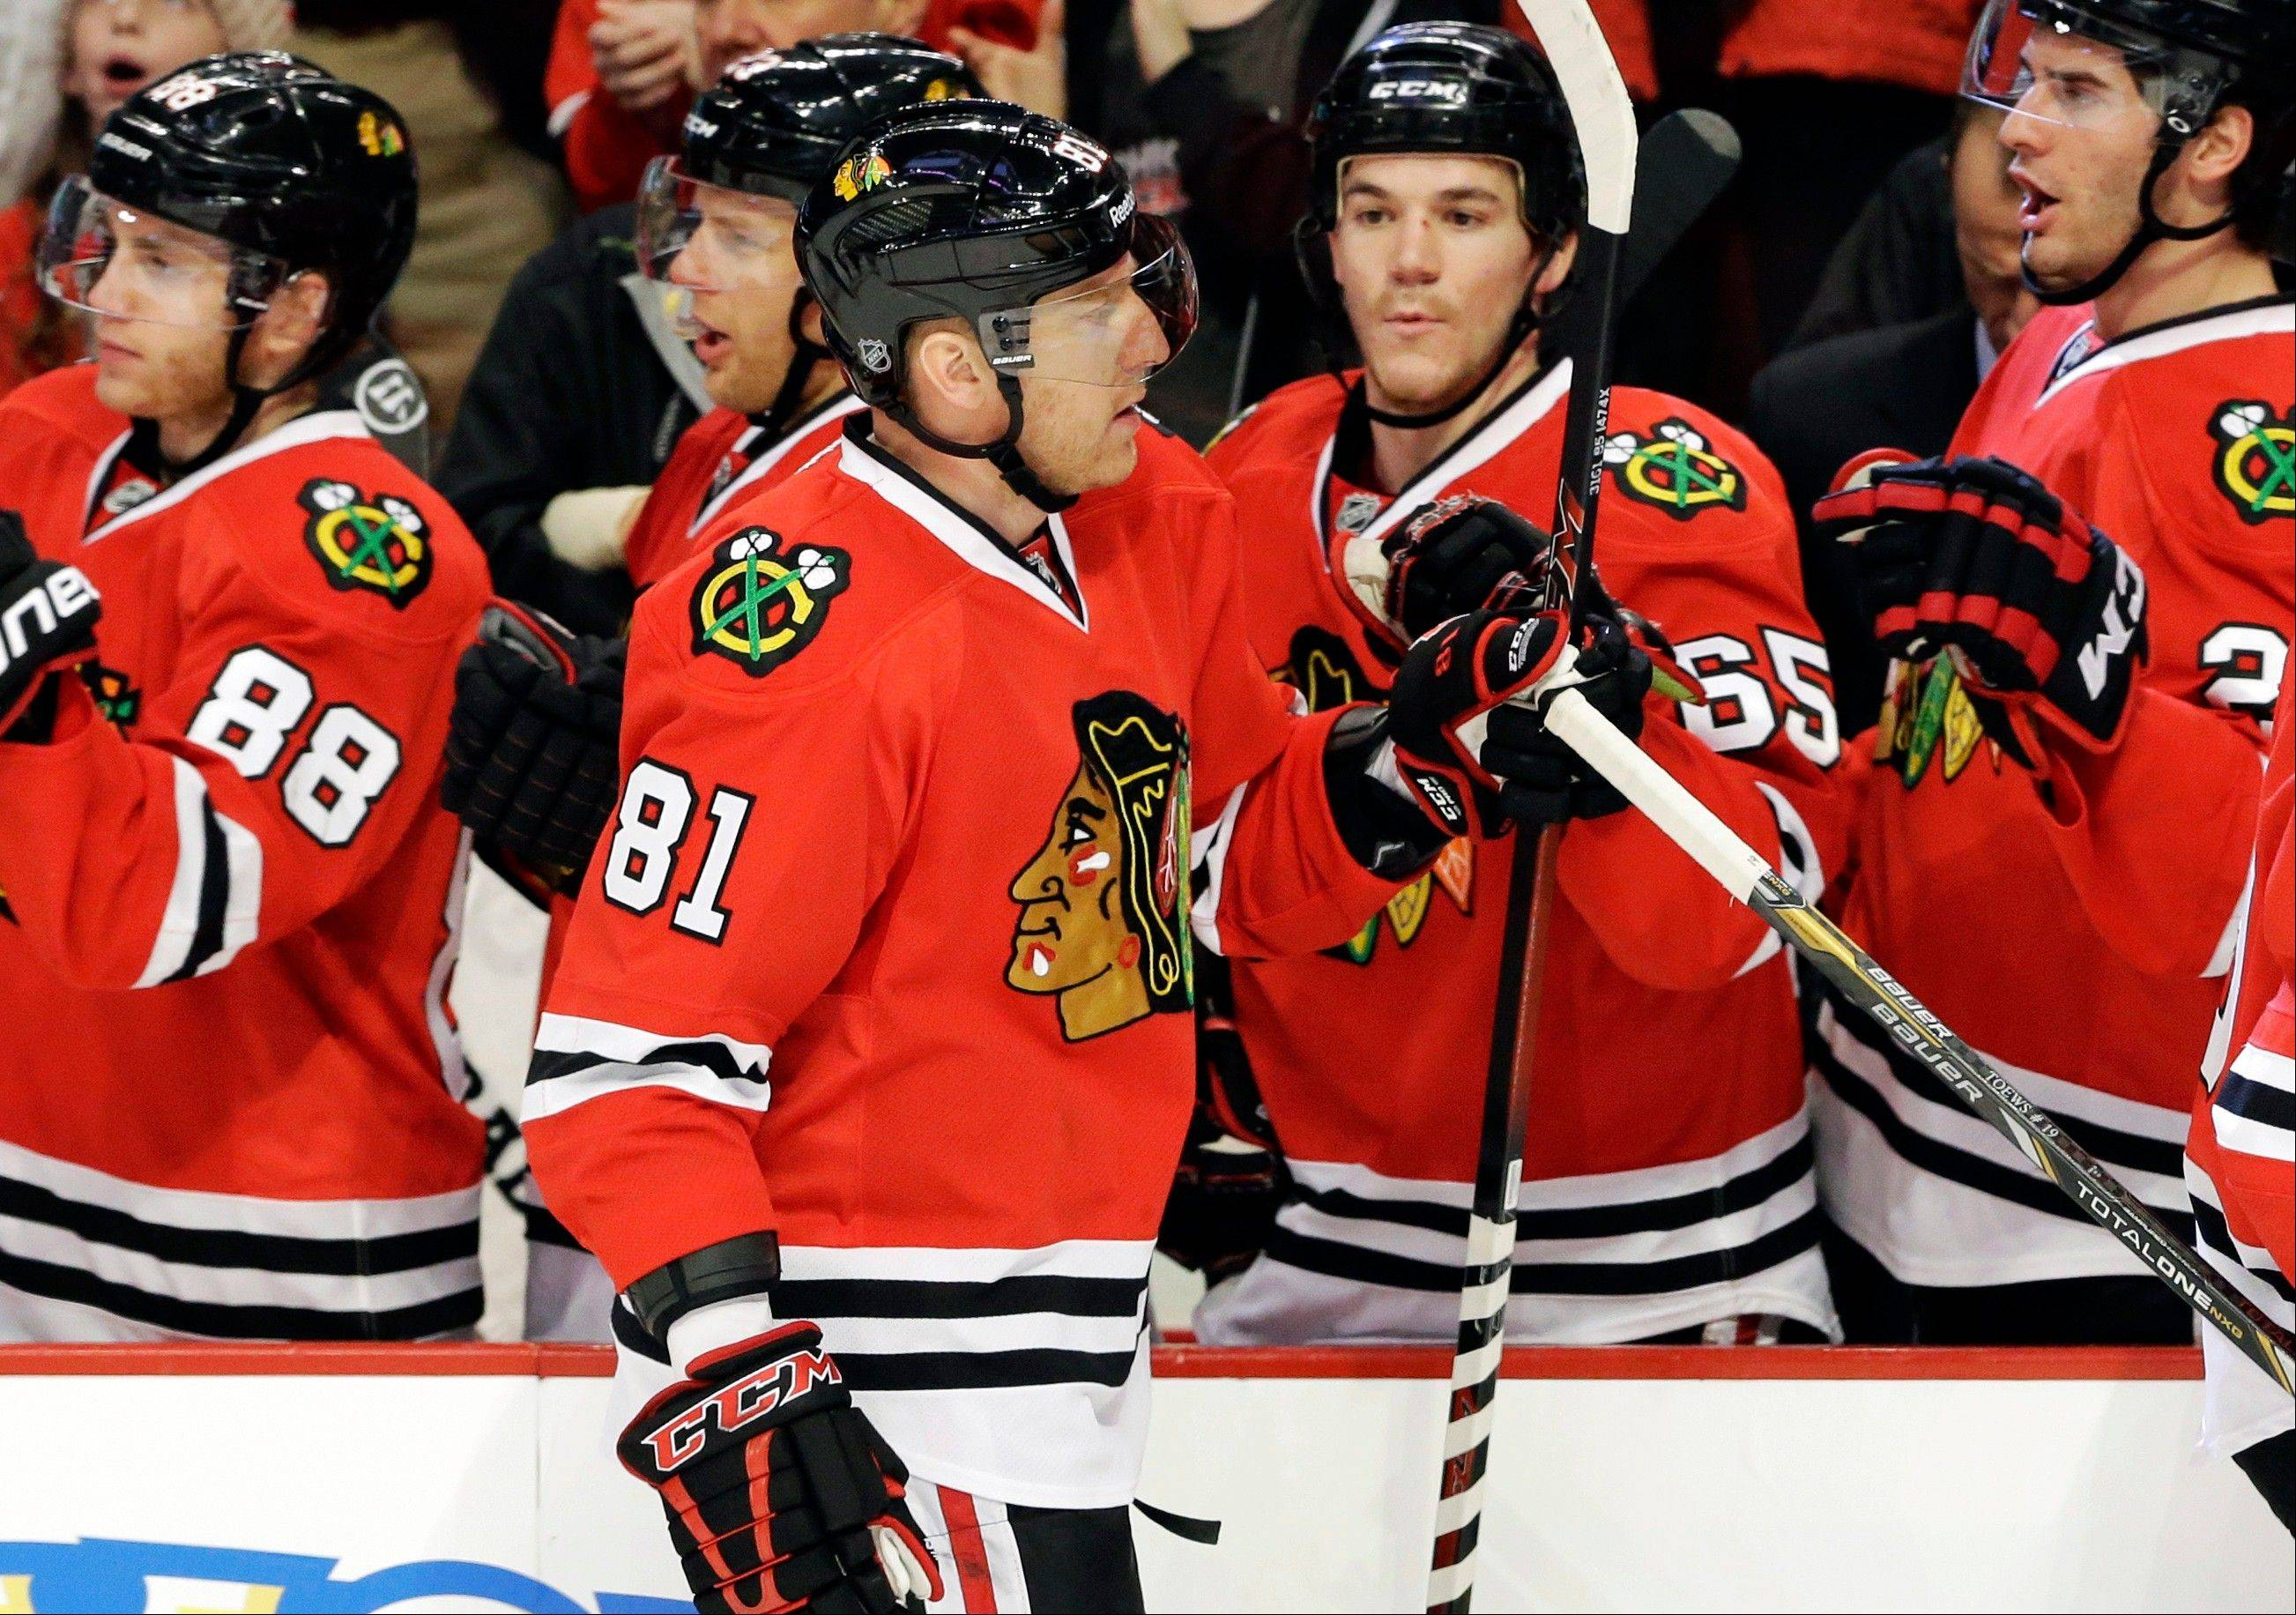 Blackhawks coach Joel Quenneville likes how his team has come together with the veteran leadership provided the right attitude and approach to every game and practice.